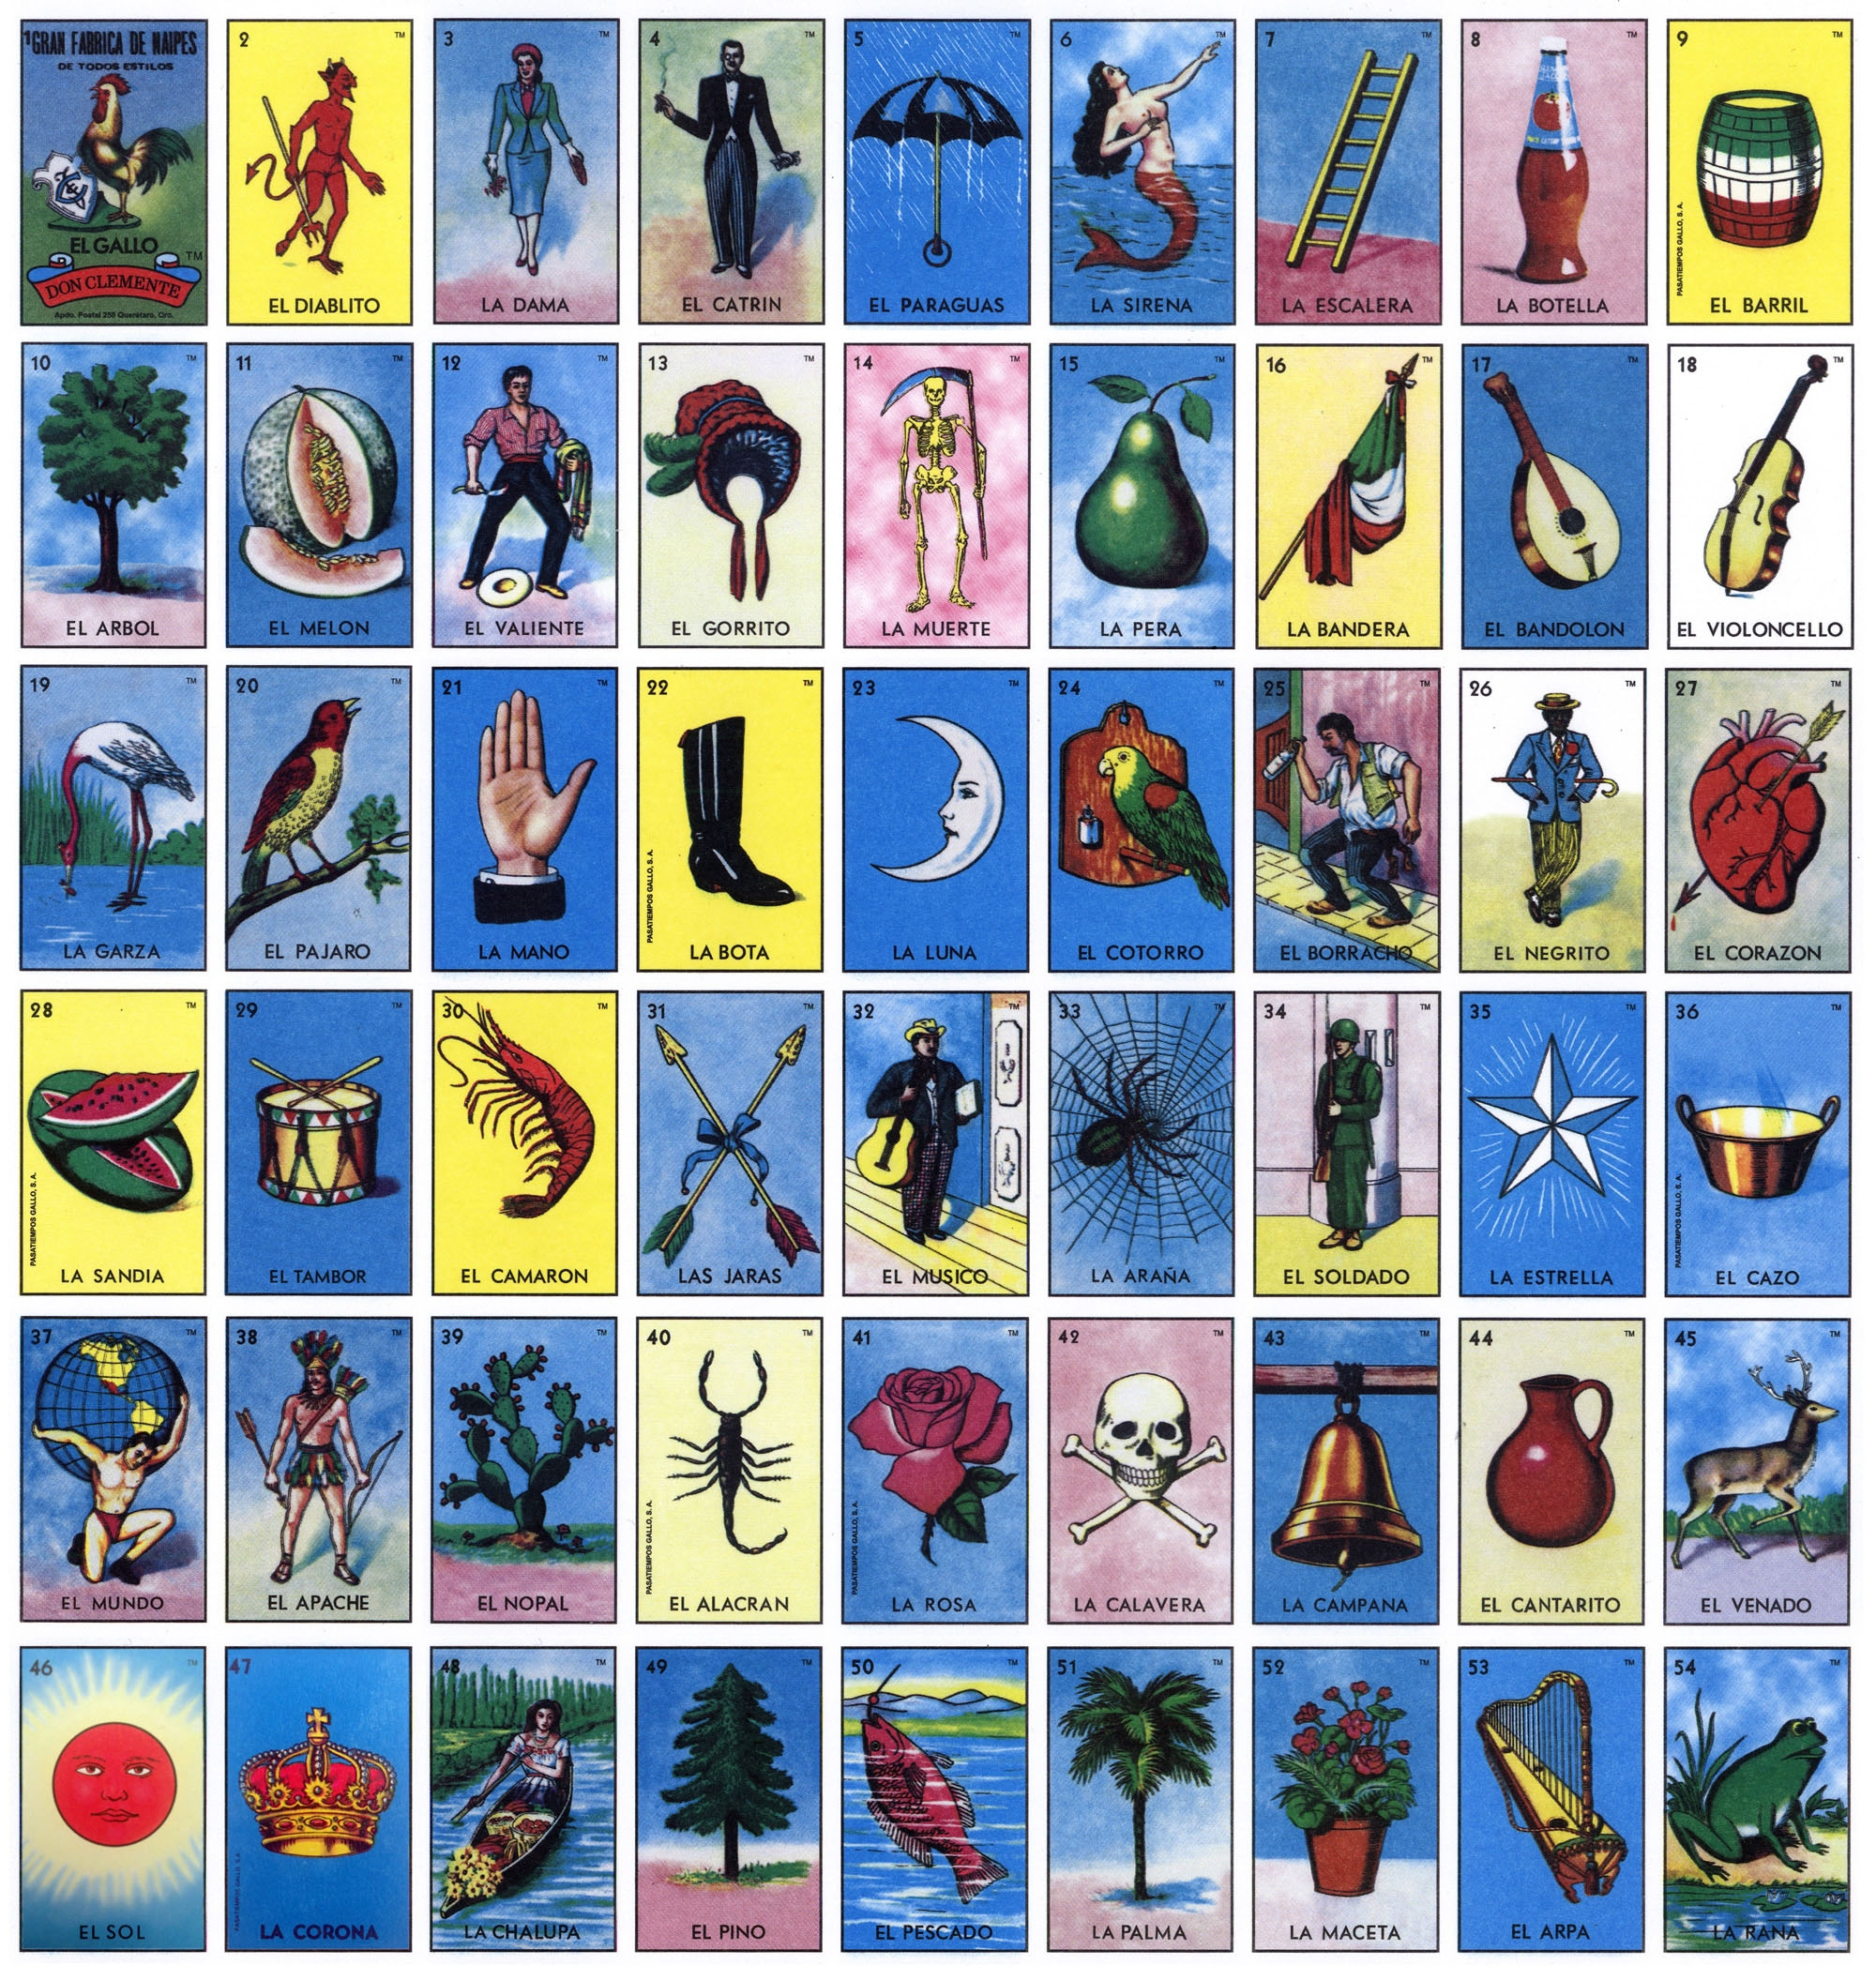 Free Printable Loteria Cards | Health-Symptoms-And-Cure - Loteria Printable Cards Free